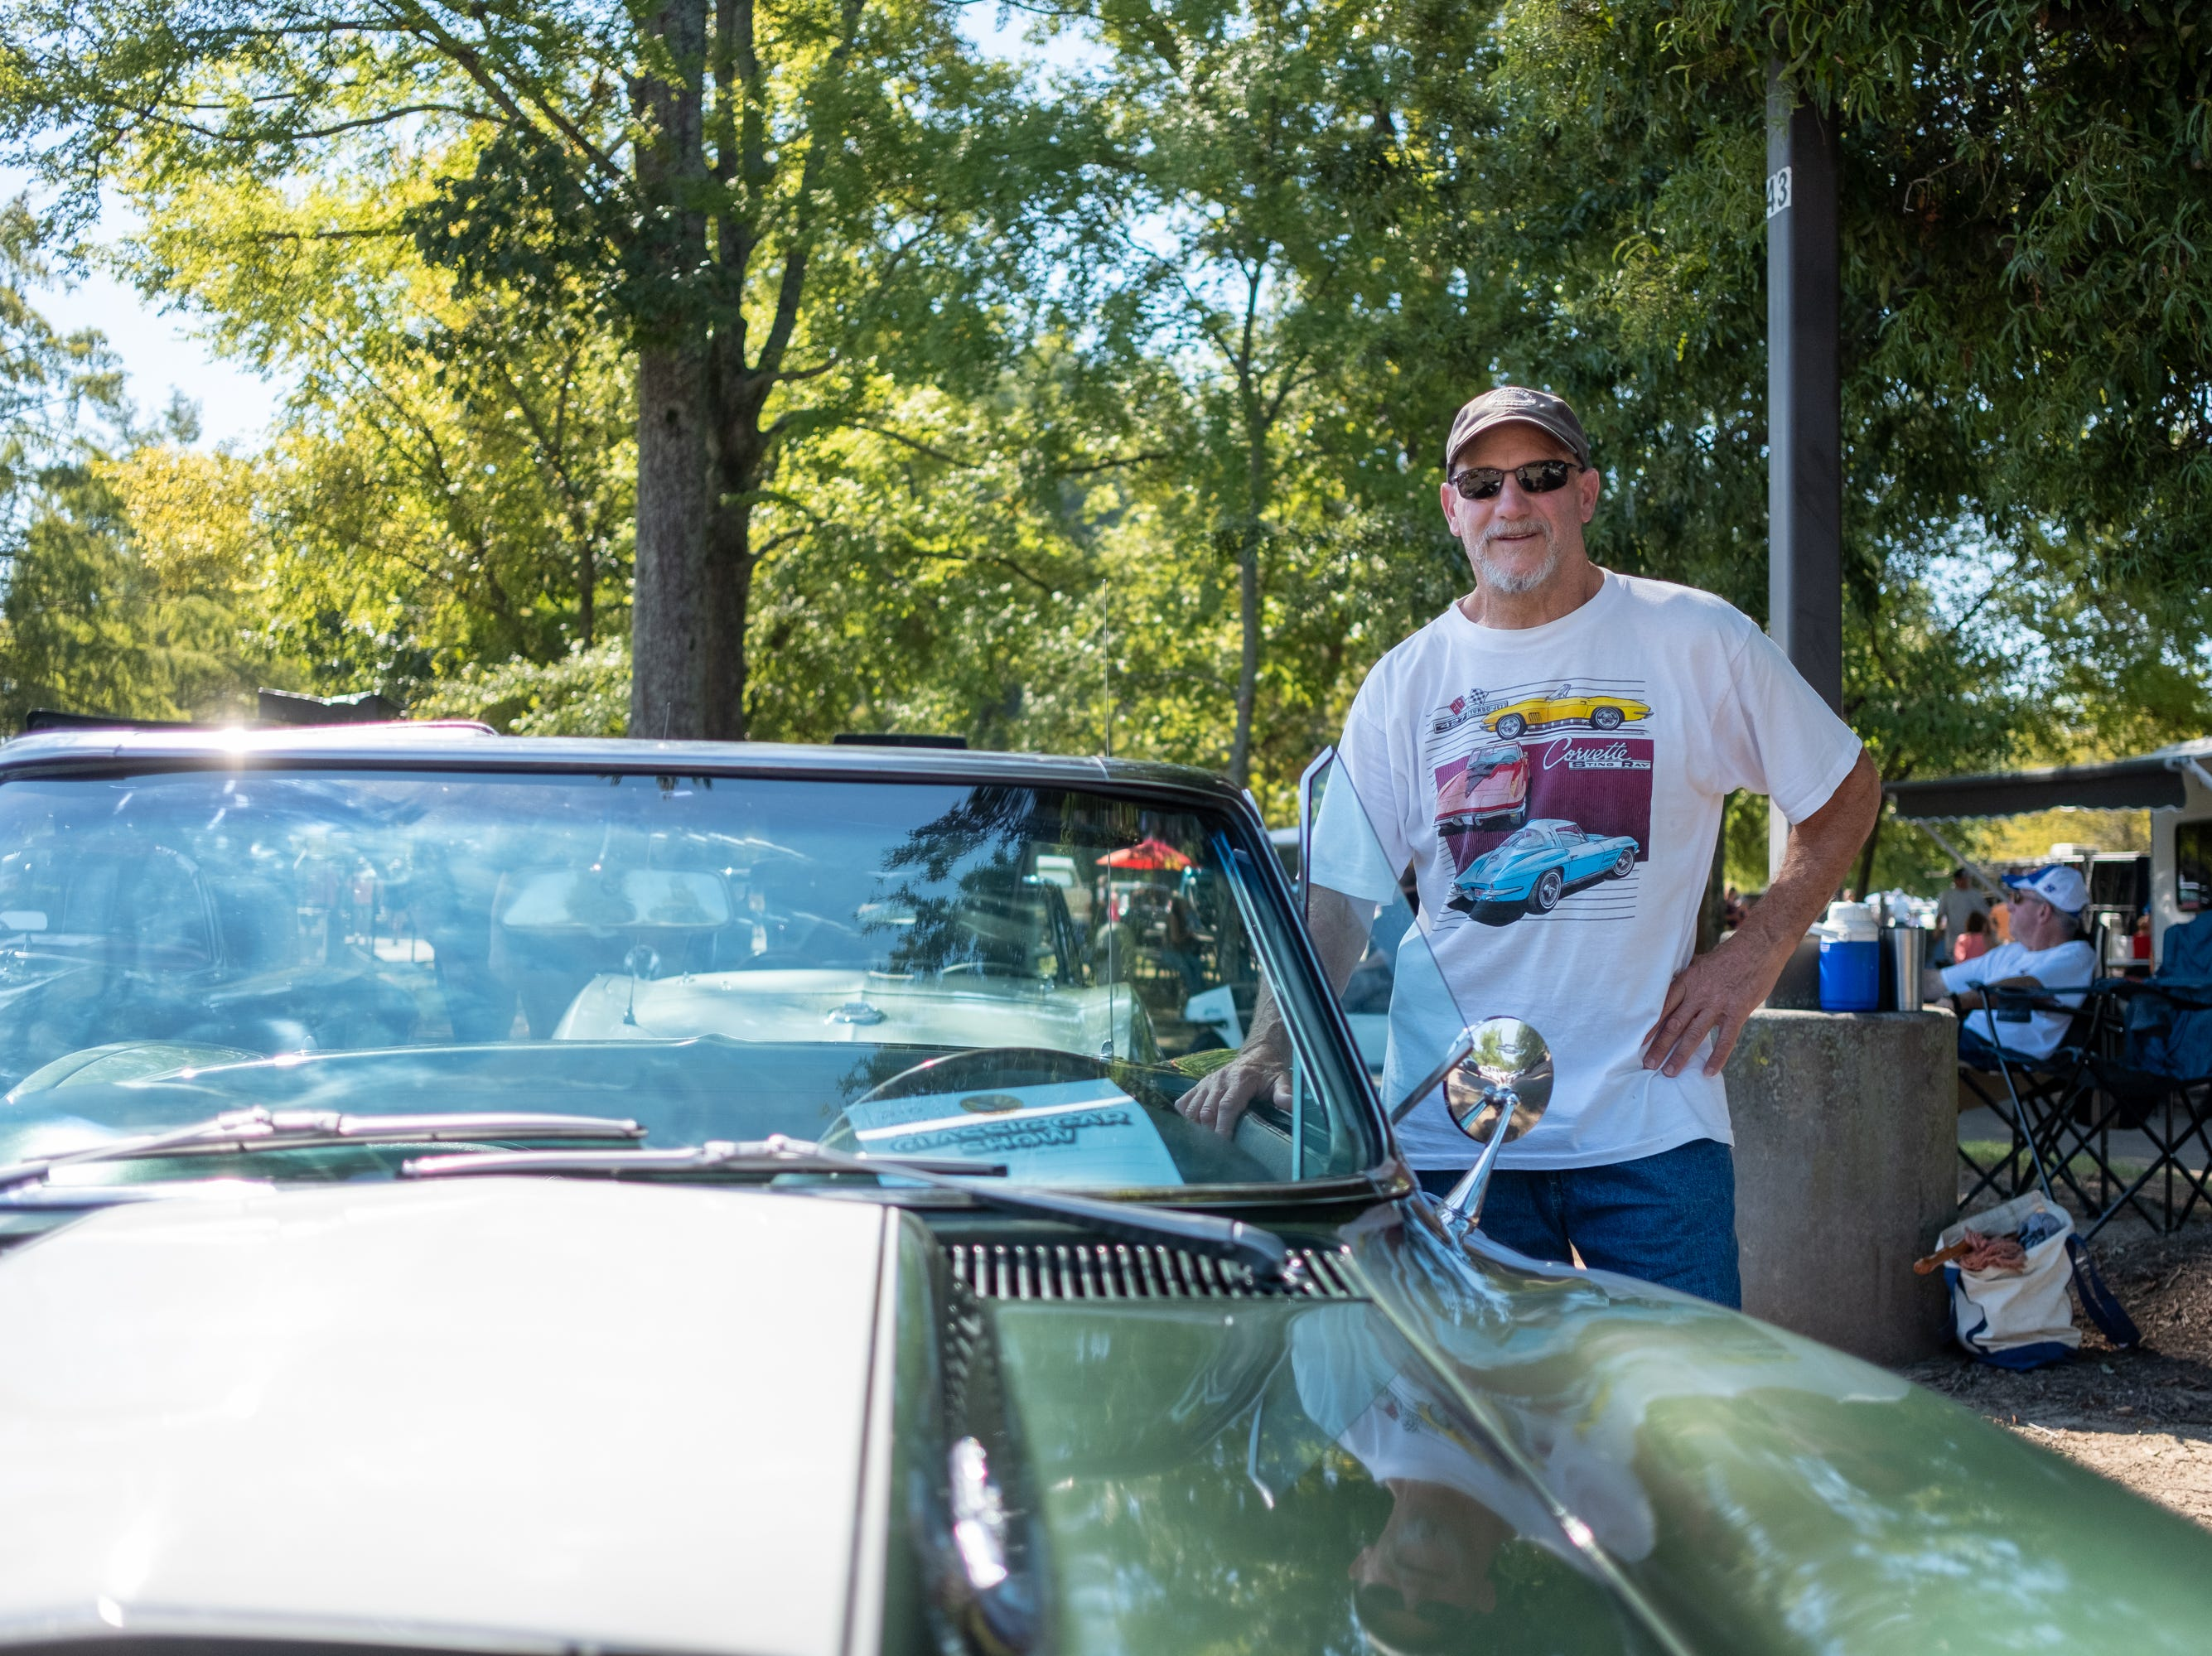 Jay Verna poses with his 1967 Corvette Stingray 427 at the Collierville Classic Car Show.